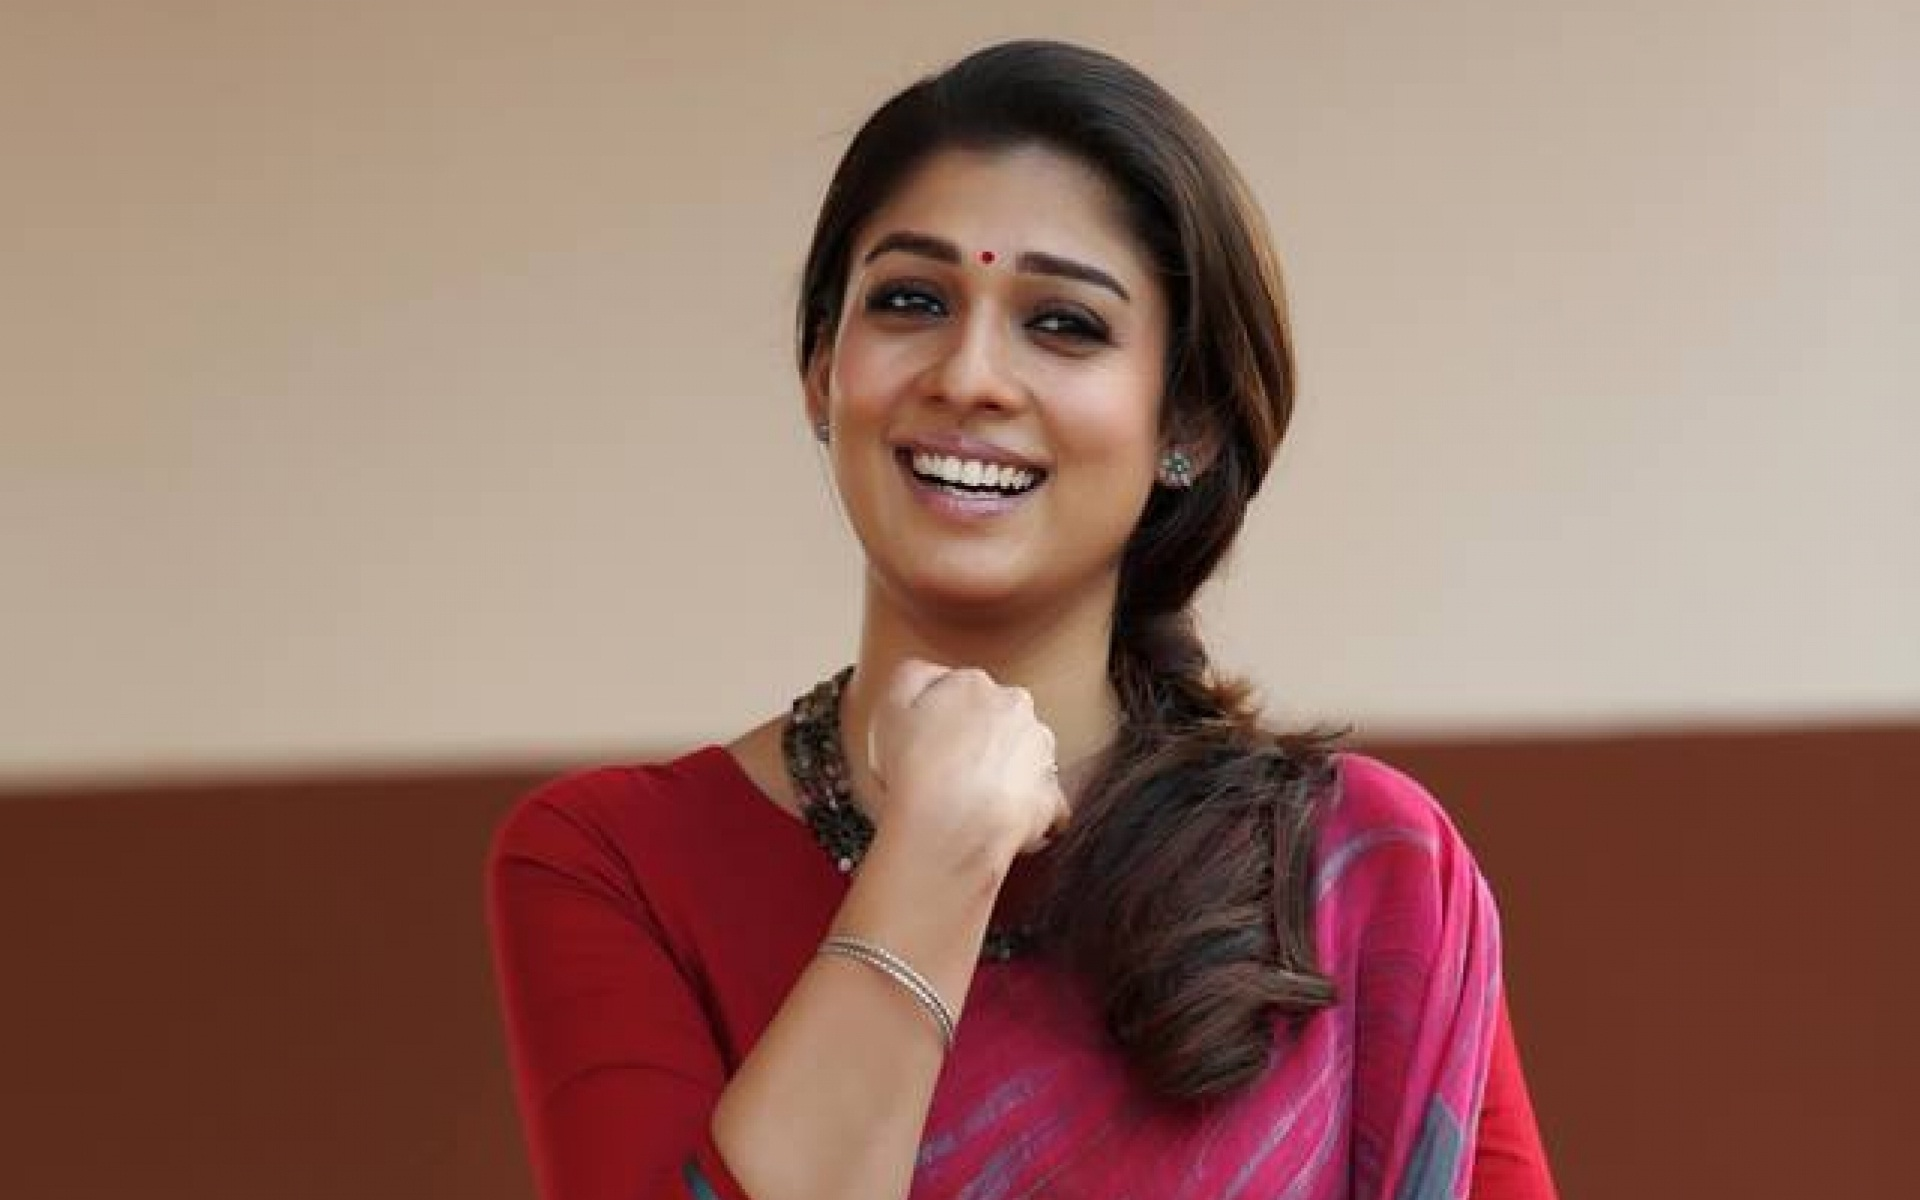 fantastic nayanthara smiling look deskop mobile free background hd photos